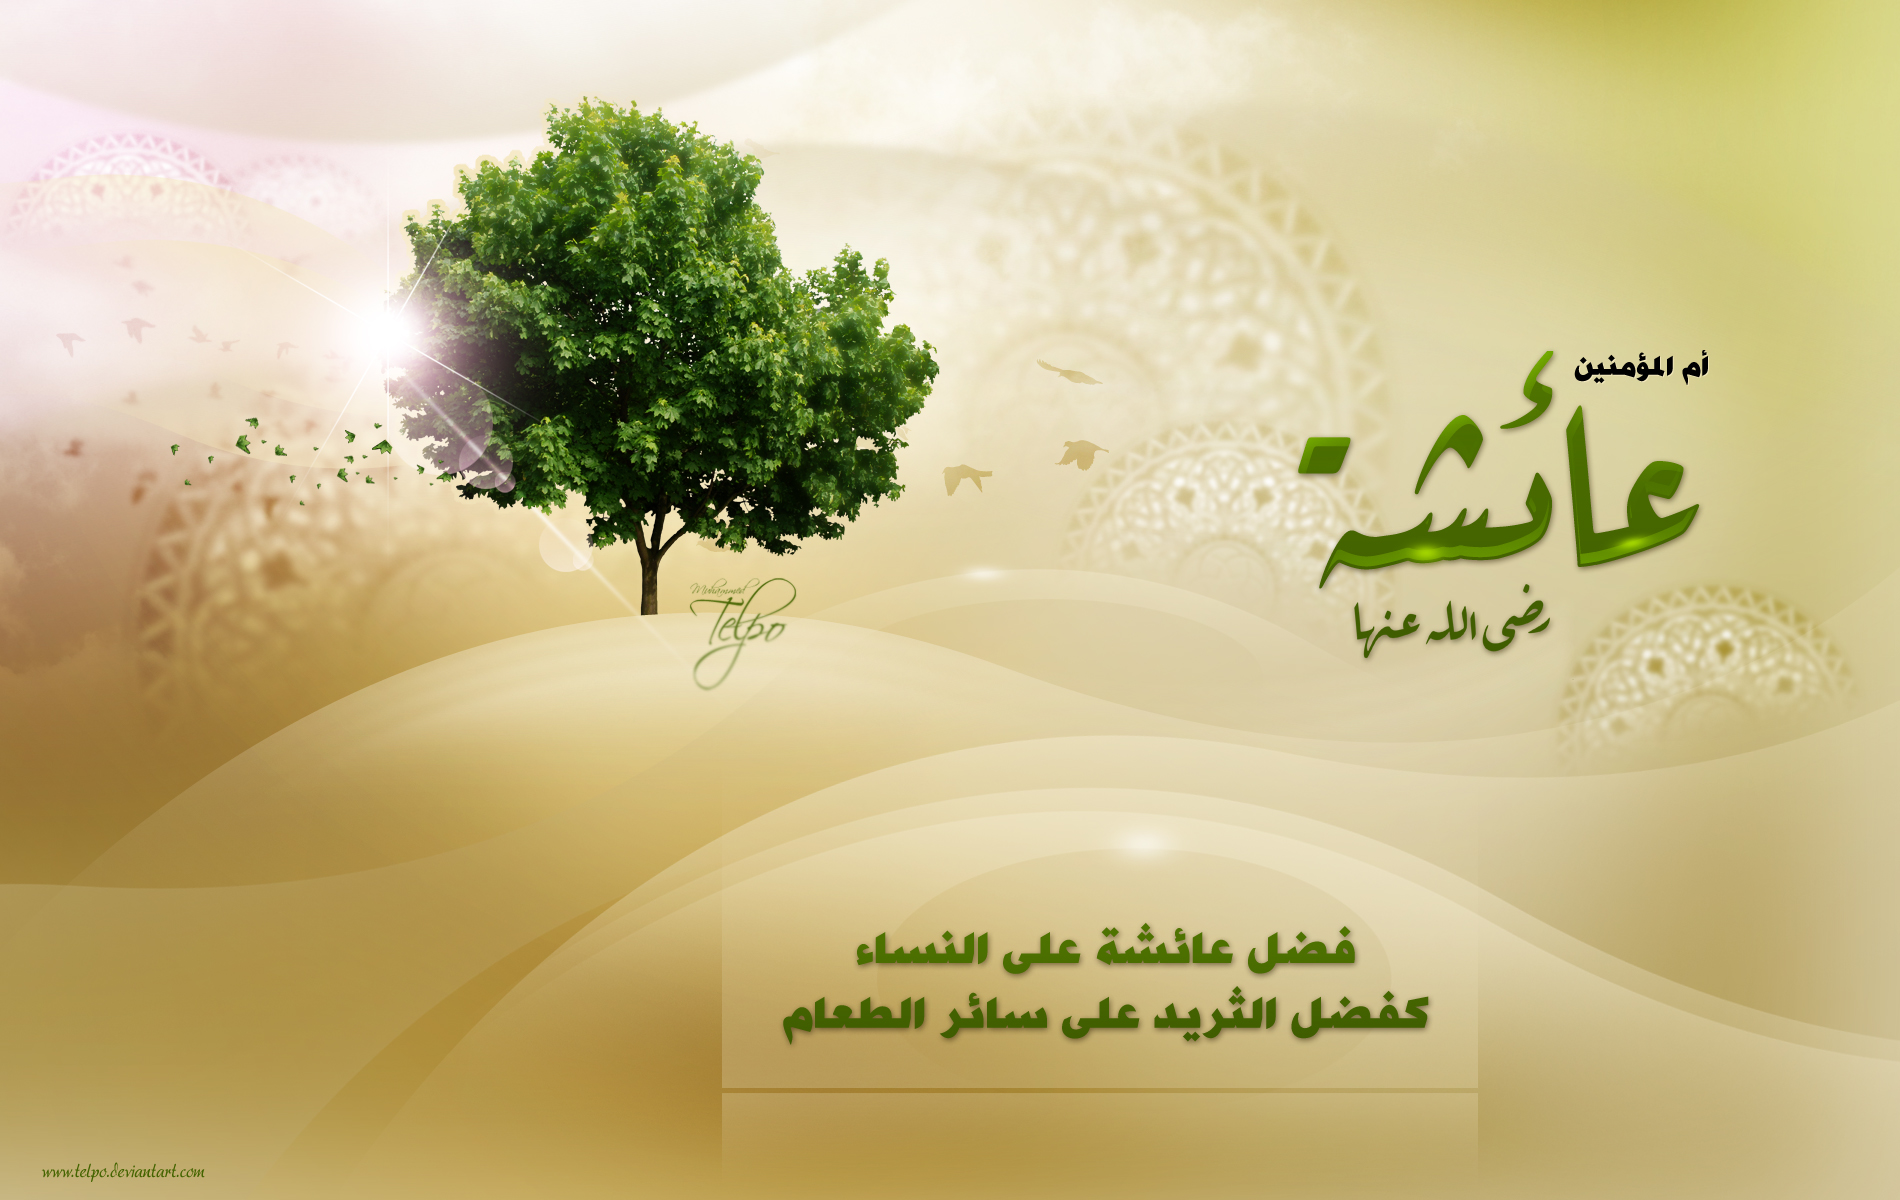 Aisha Mother of the Believers   Wallpaper Alhabib Islamic Style 1900x1200